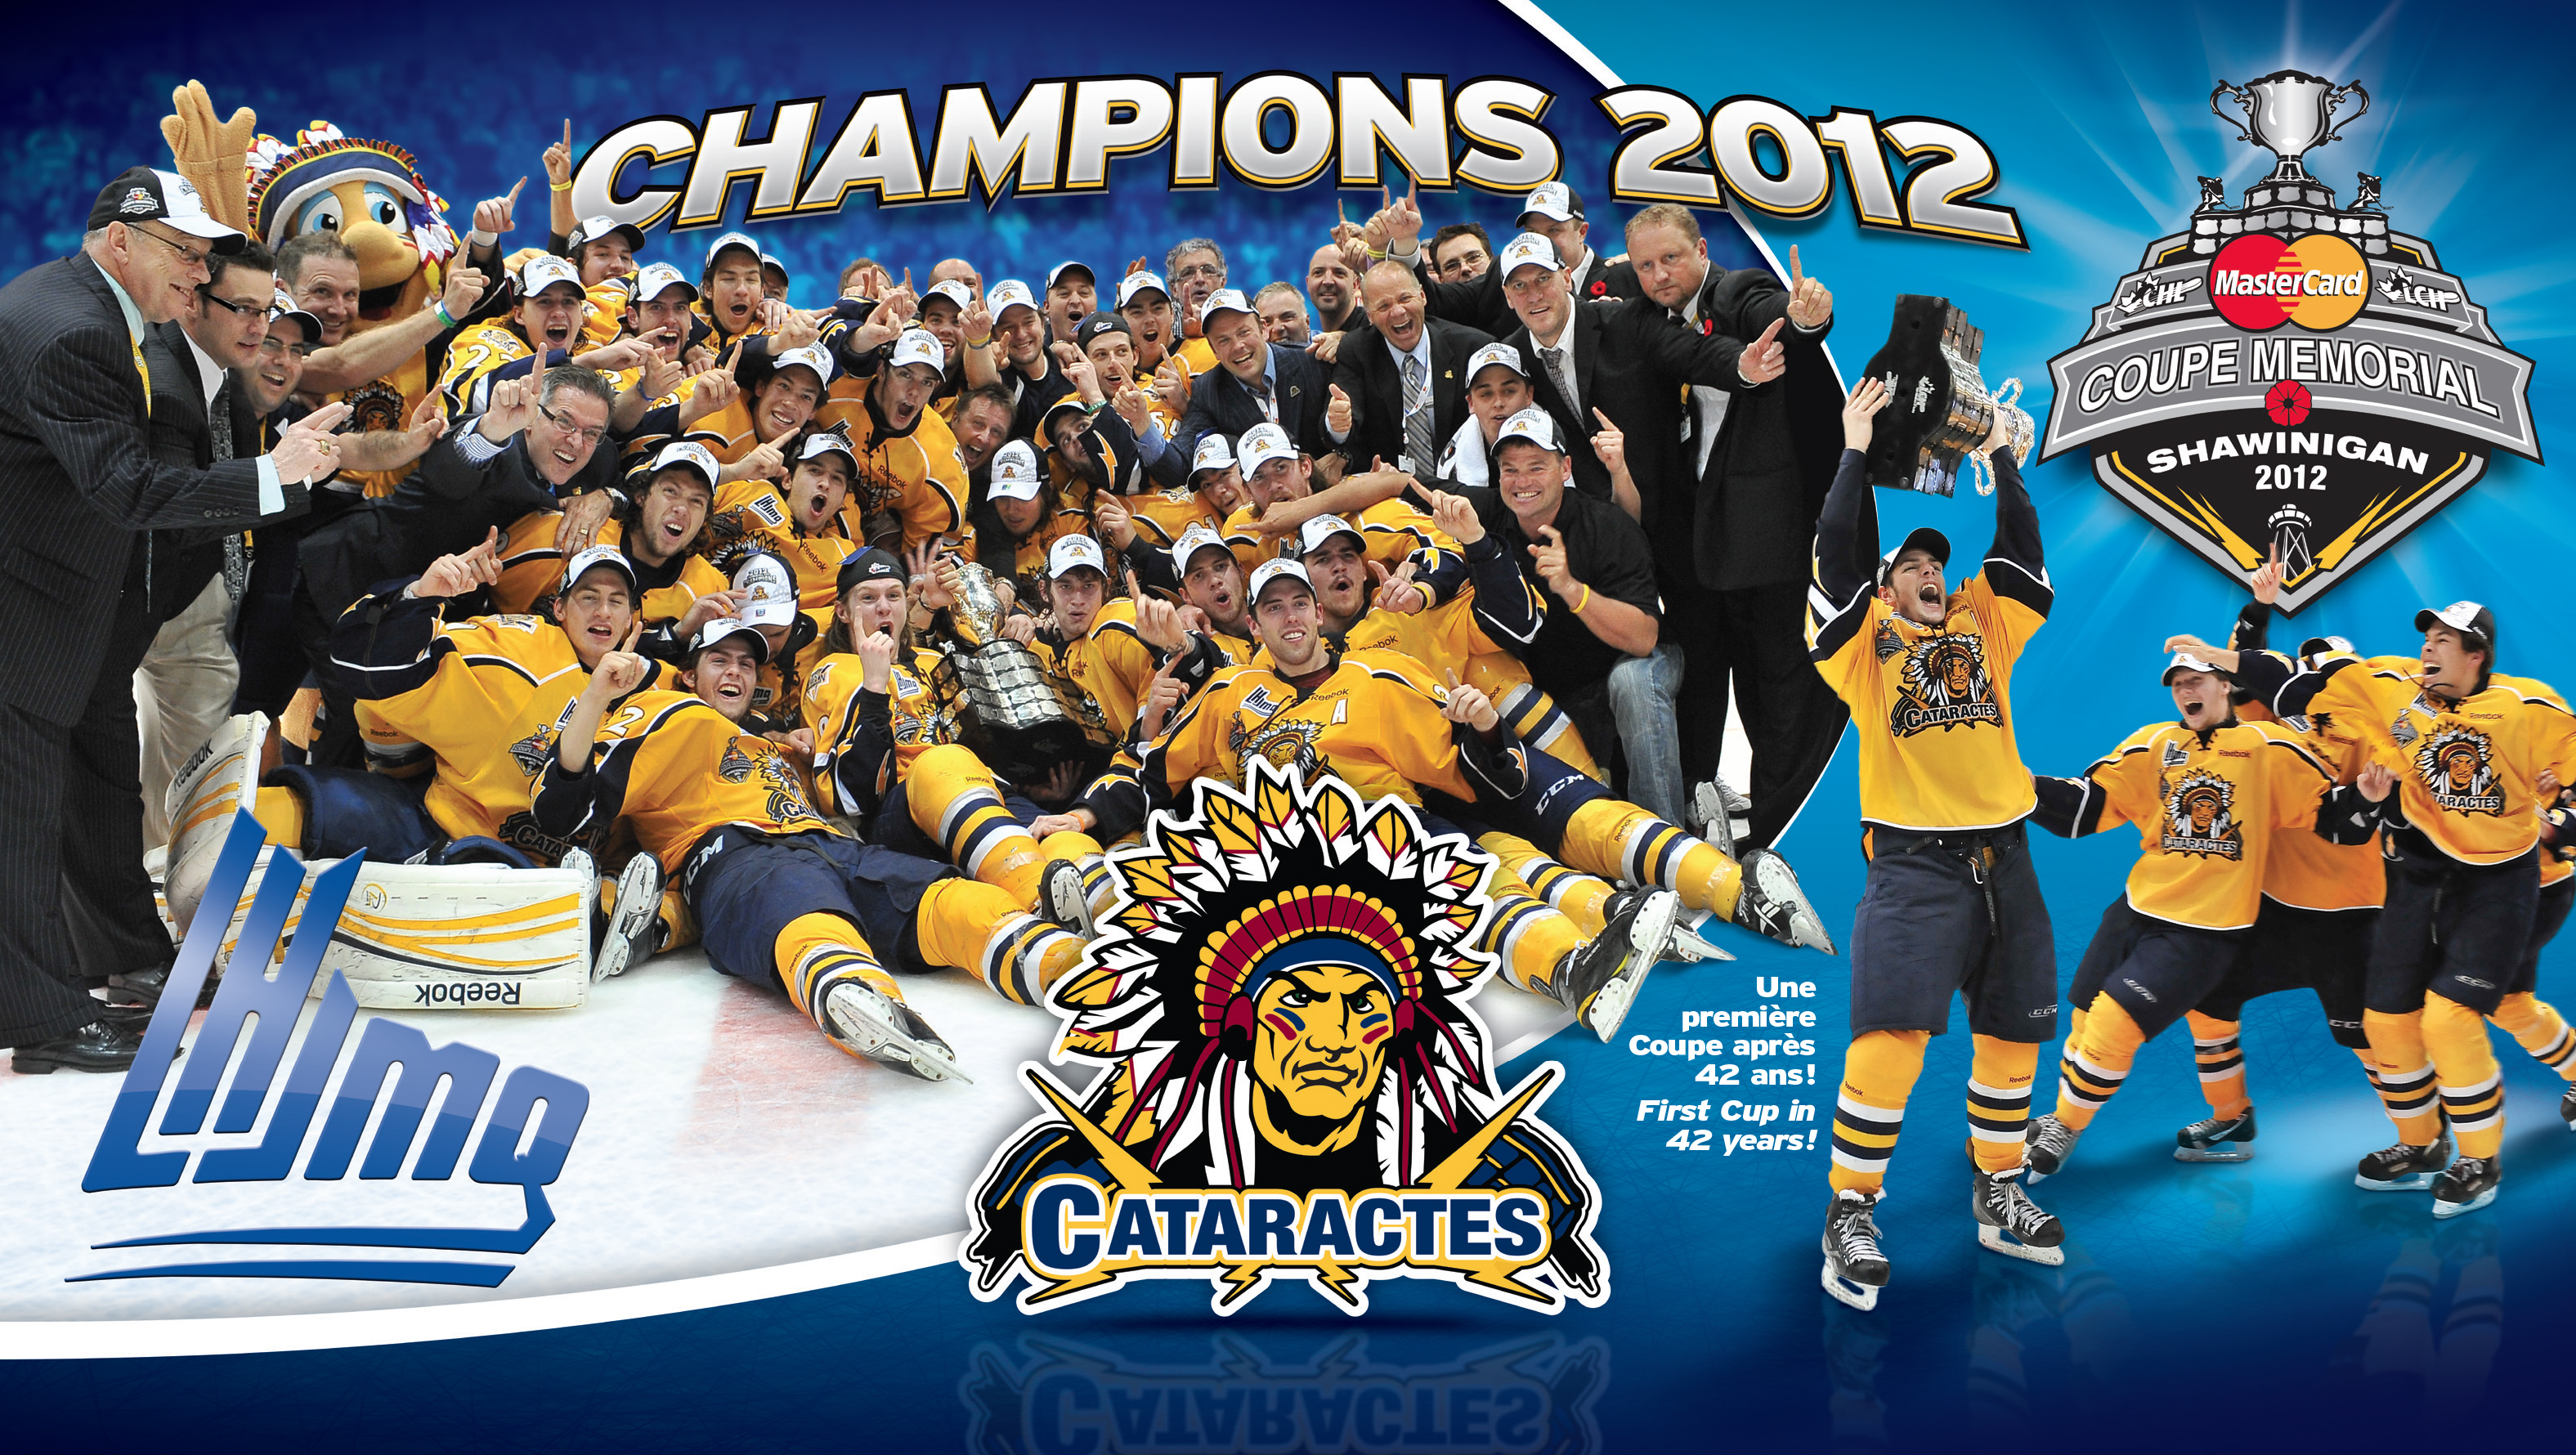 2012 - Champions Coupe Memorial / Memorial Cup Champions